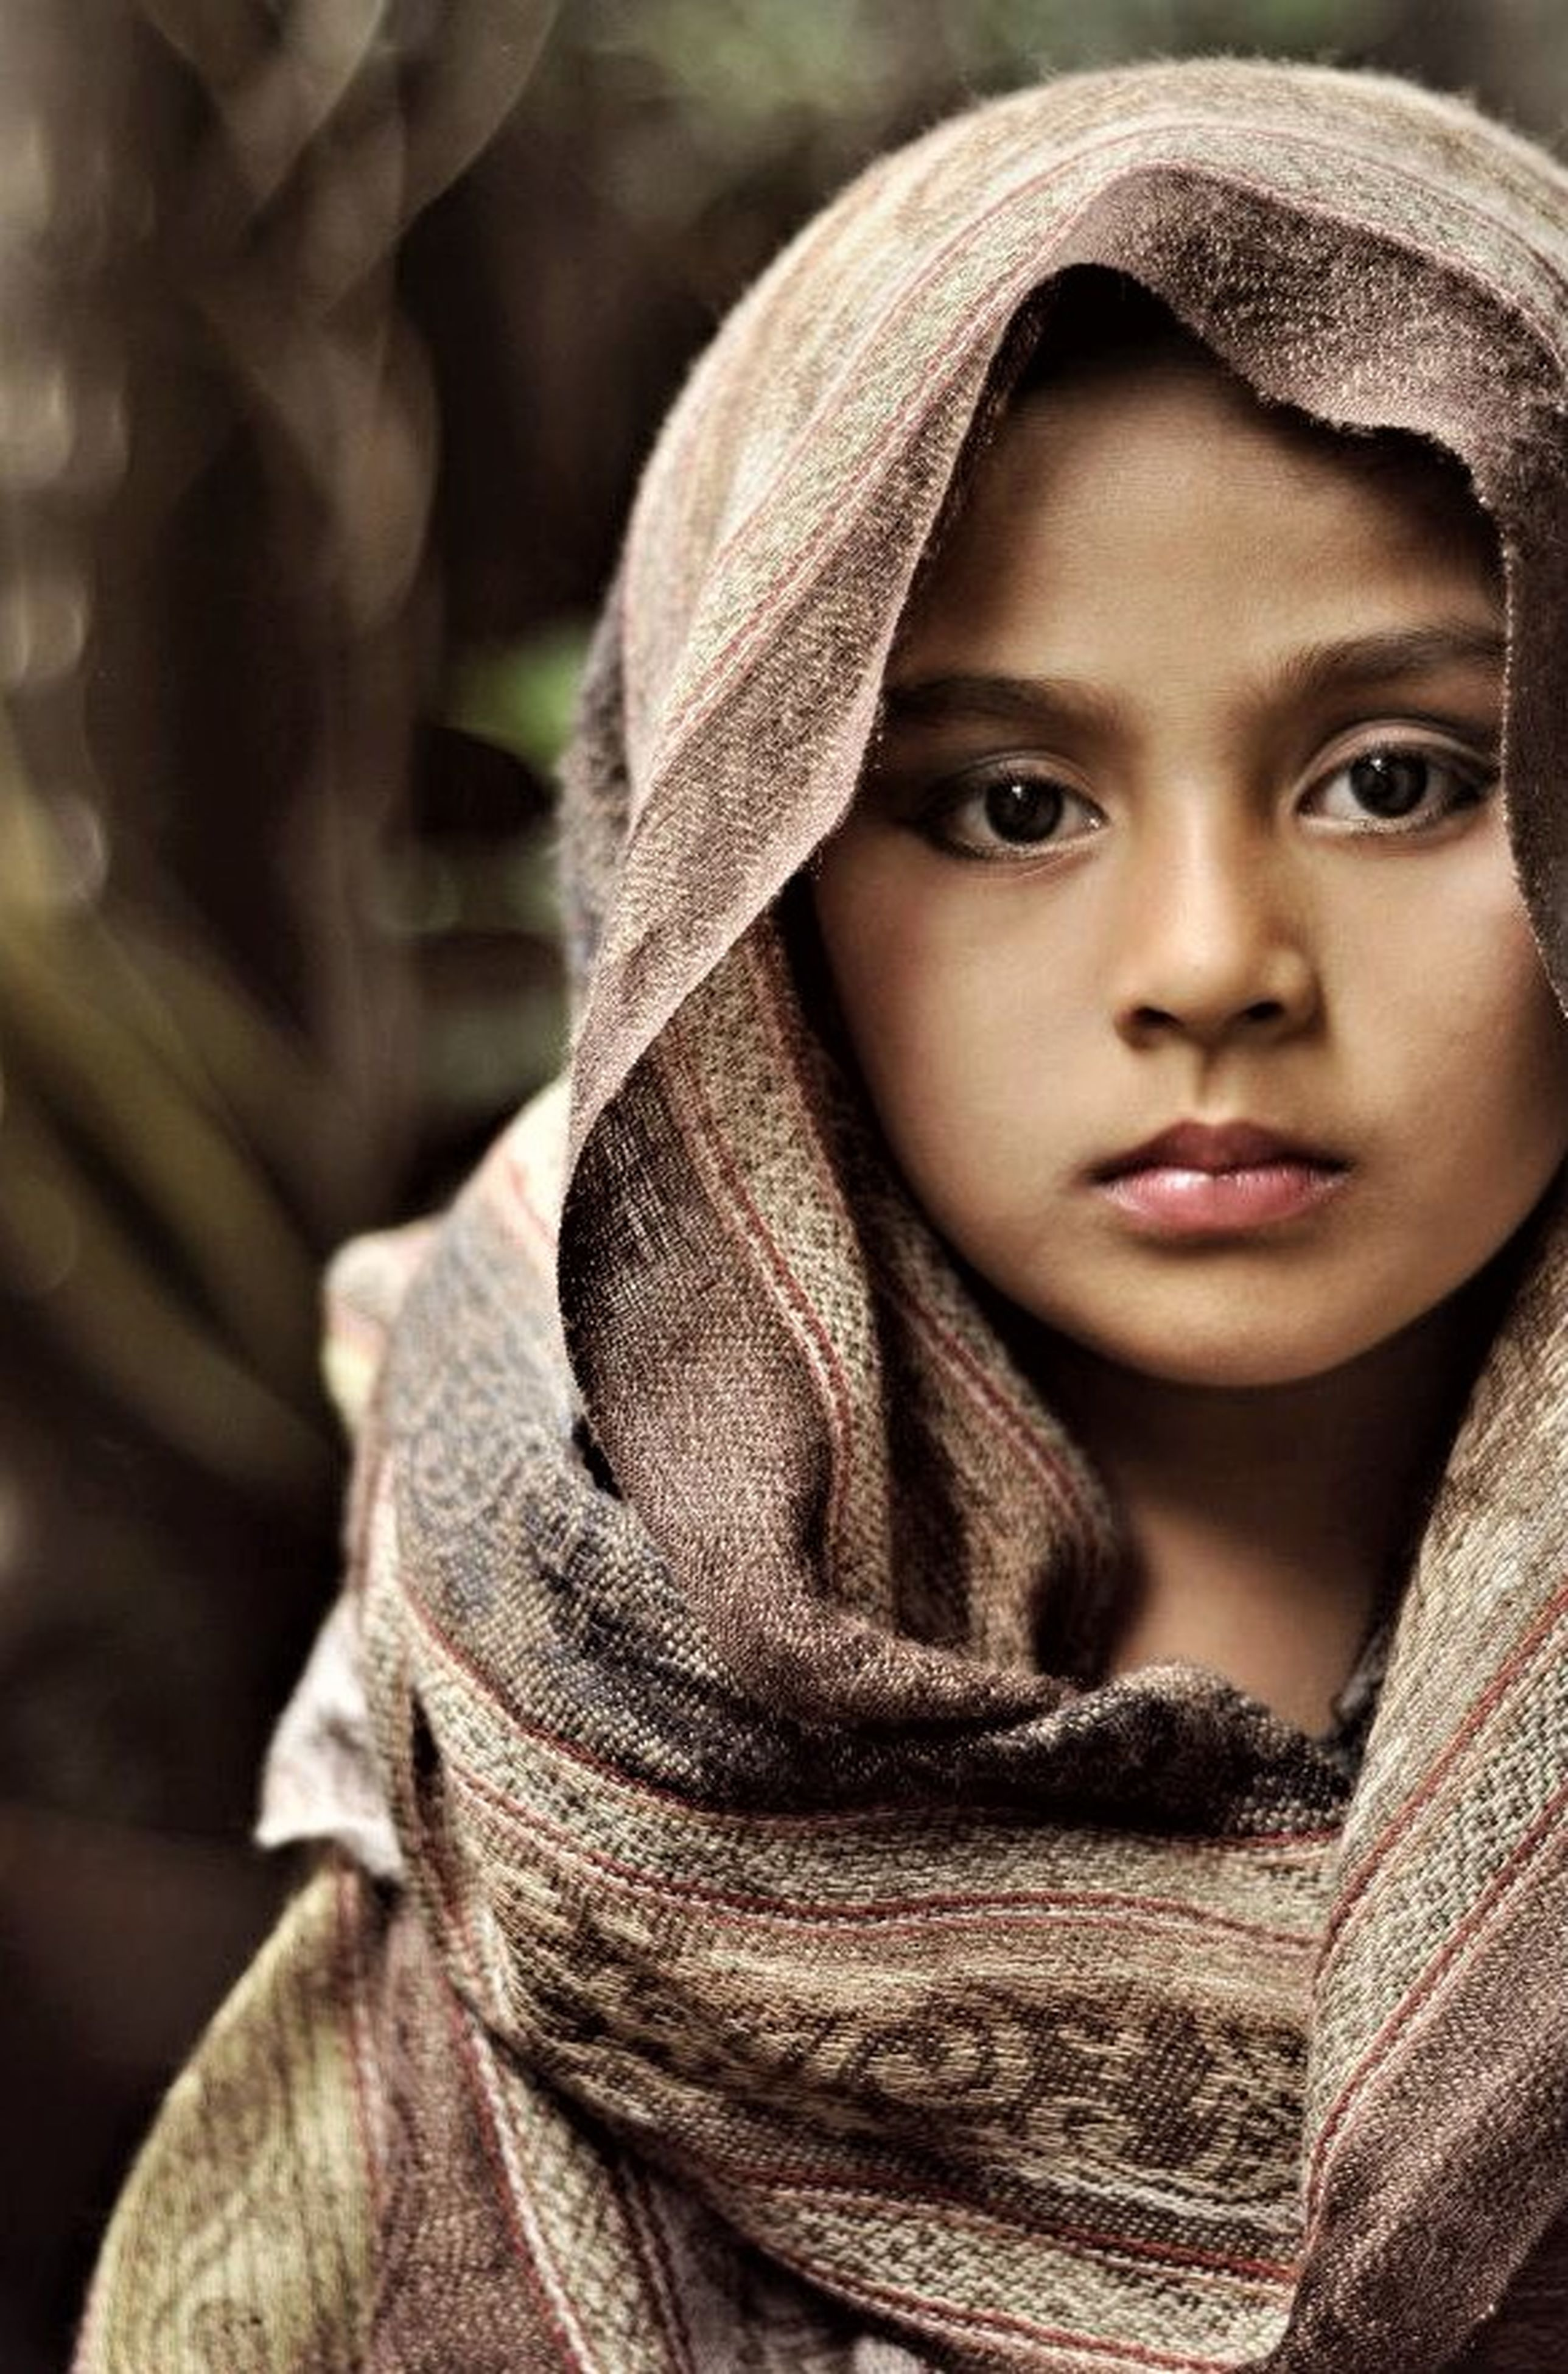 childhood, one person, portrait, headshot, close-up, girls, human face, looking at camera, real people, outdoors, child, day, warm clothing, people